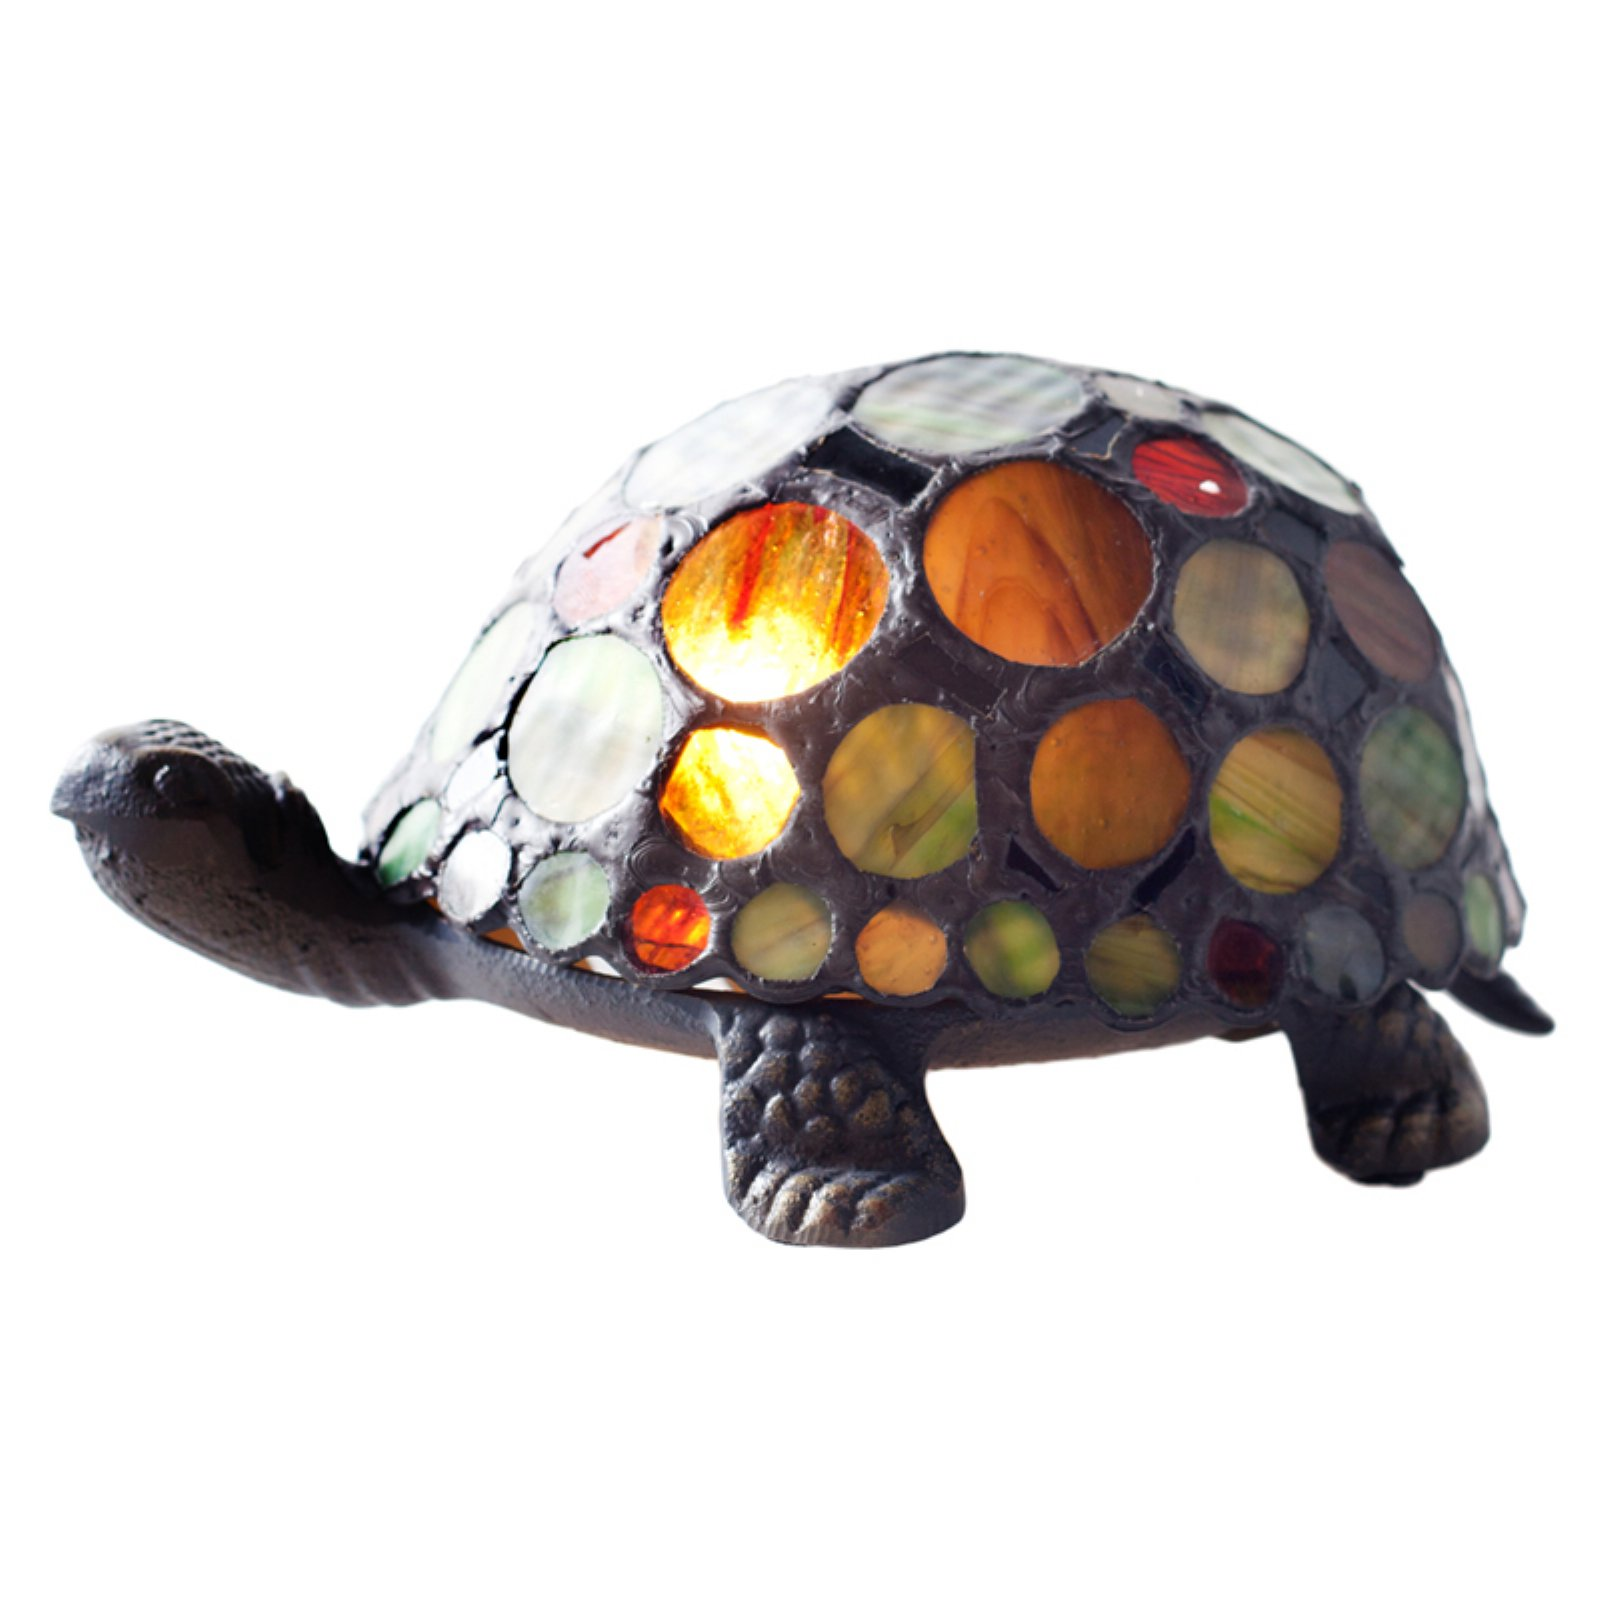 River of Goods 11305 Stained Glass Spotted Turtle Table Lamp